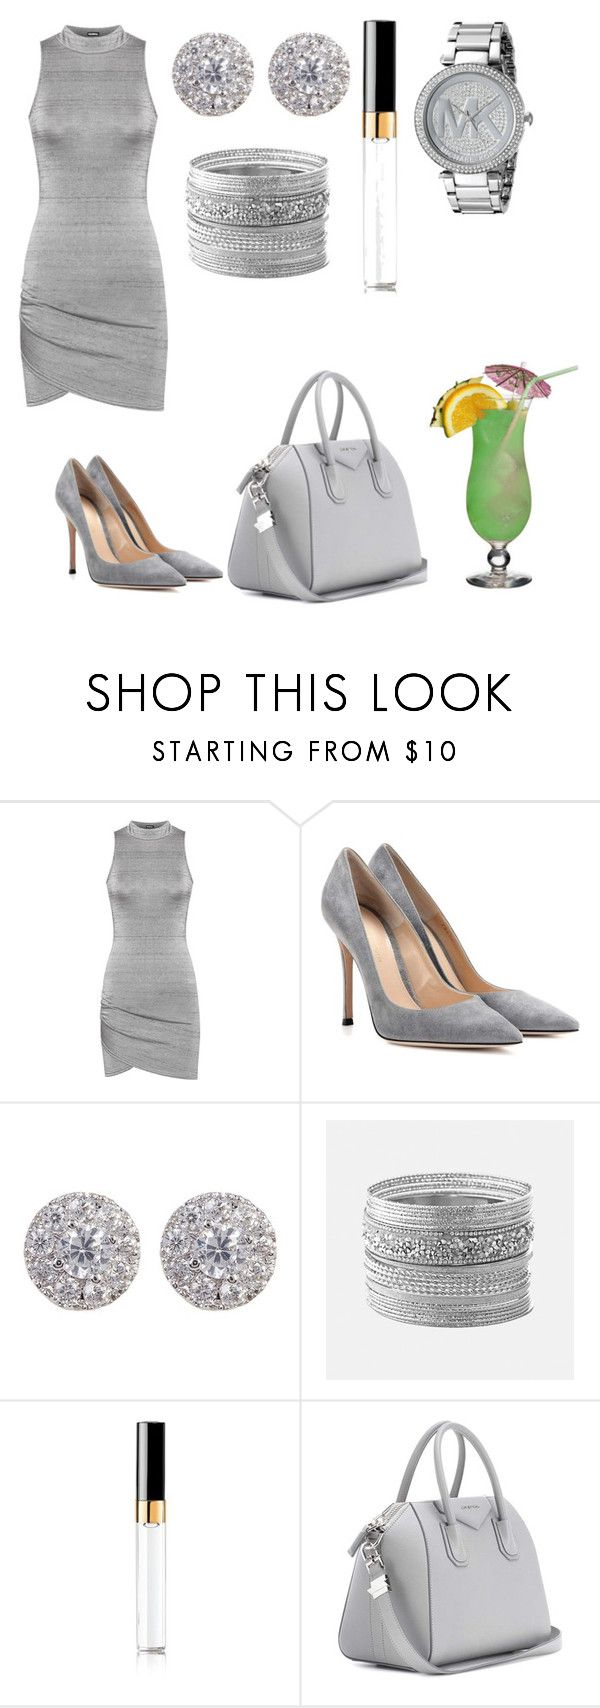 """Happy Hour Mock"" by laylayoung2003 ❤ liked on Polyvore featuring WearAll, Gianvito Rossi, Nordstrom Rack, Avenue, Chanel, Givenchy and Michael Kors"